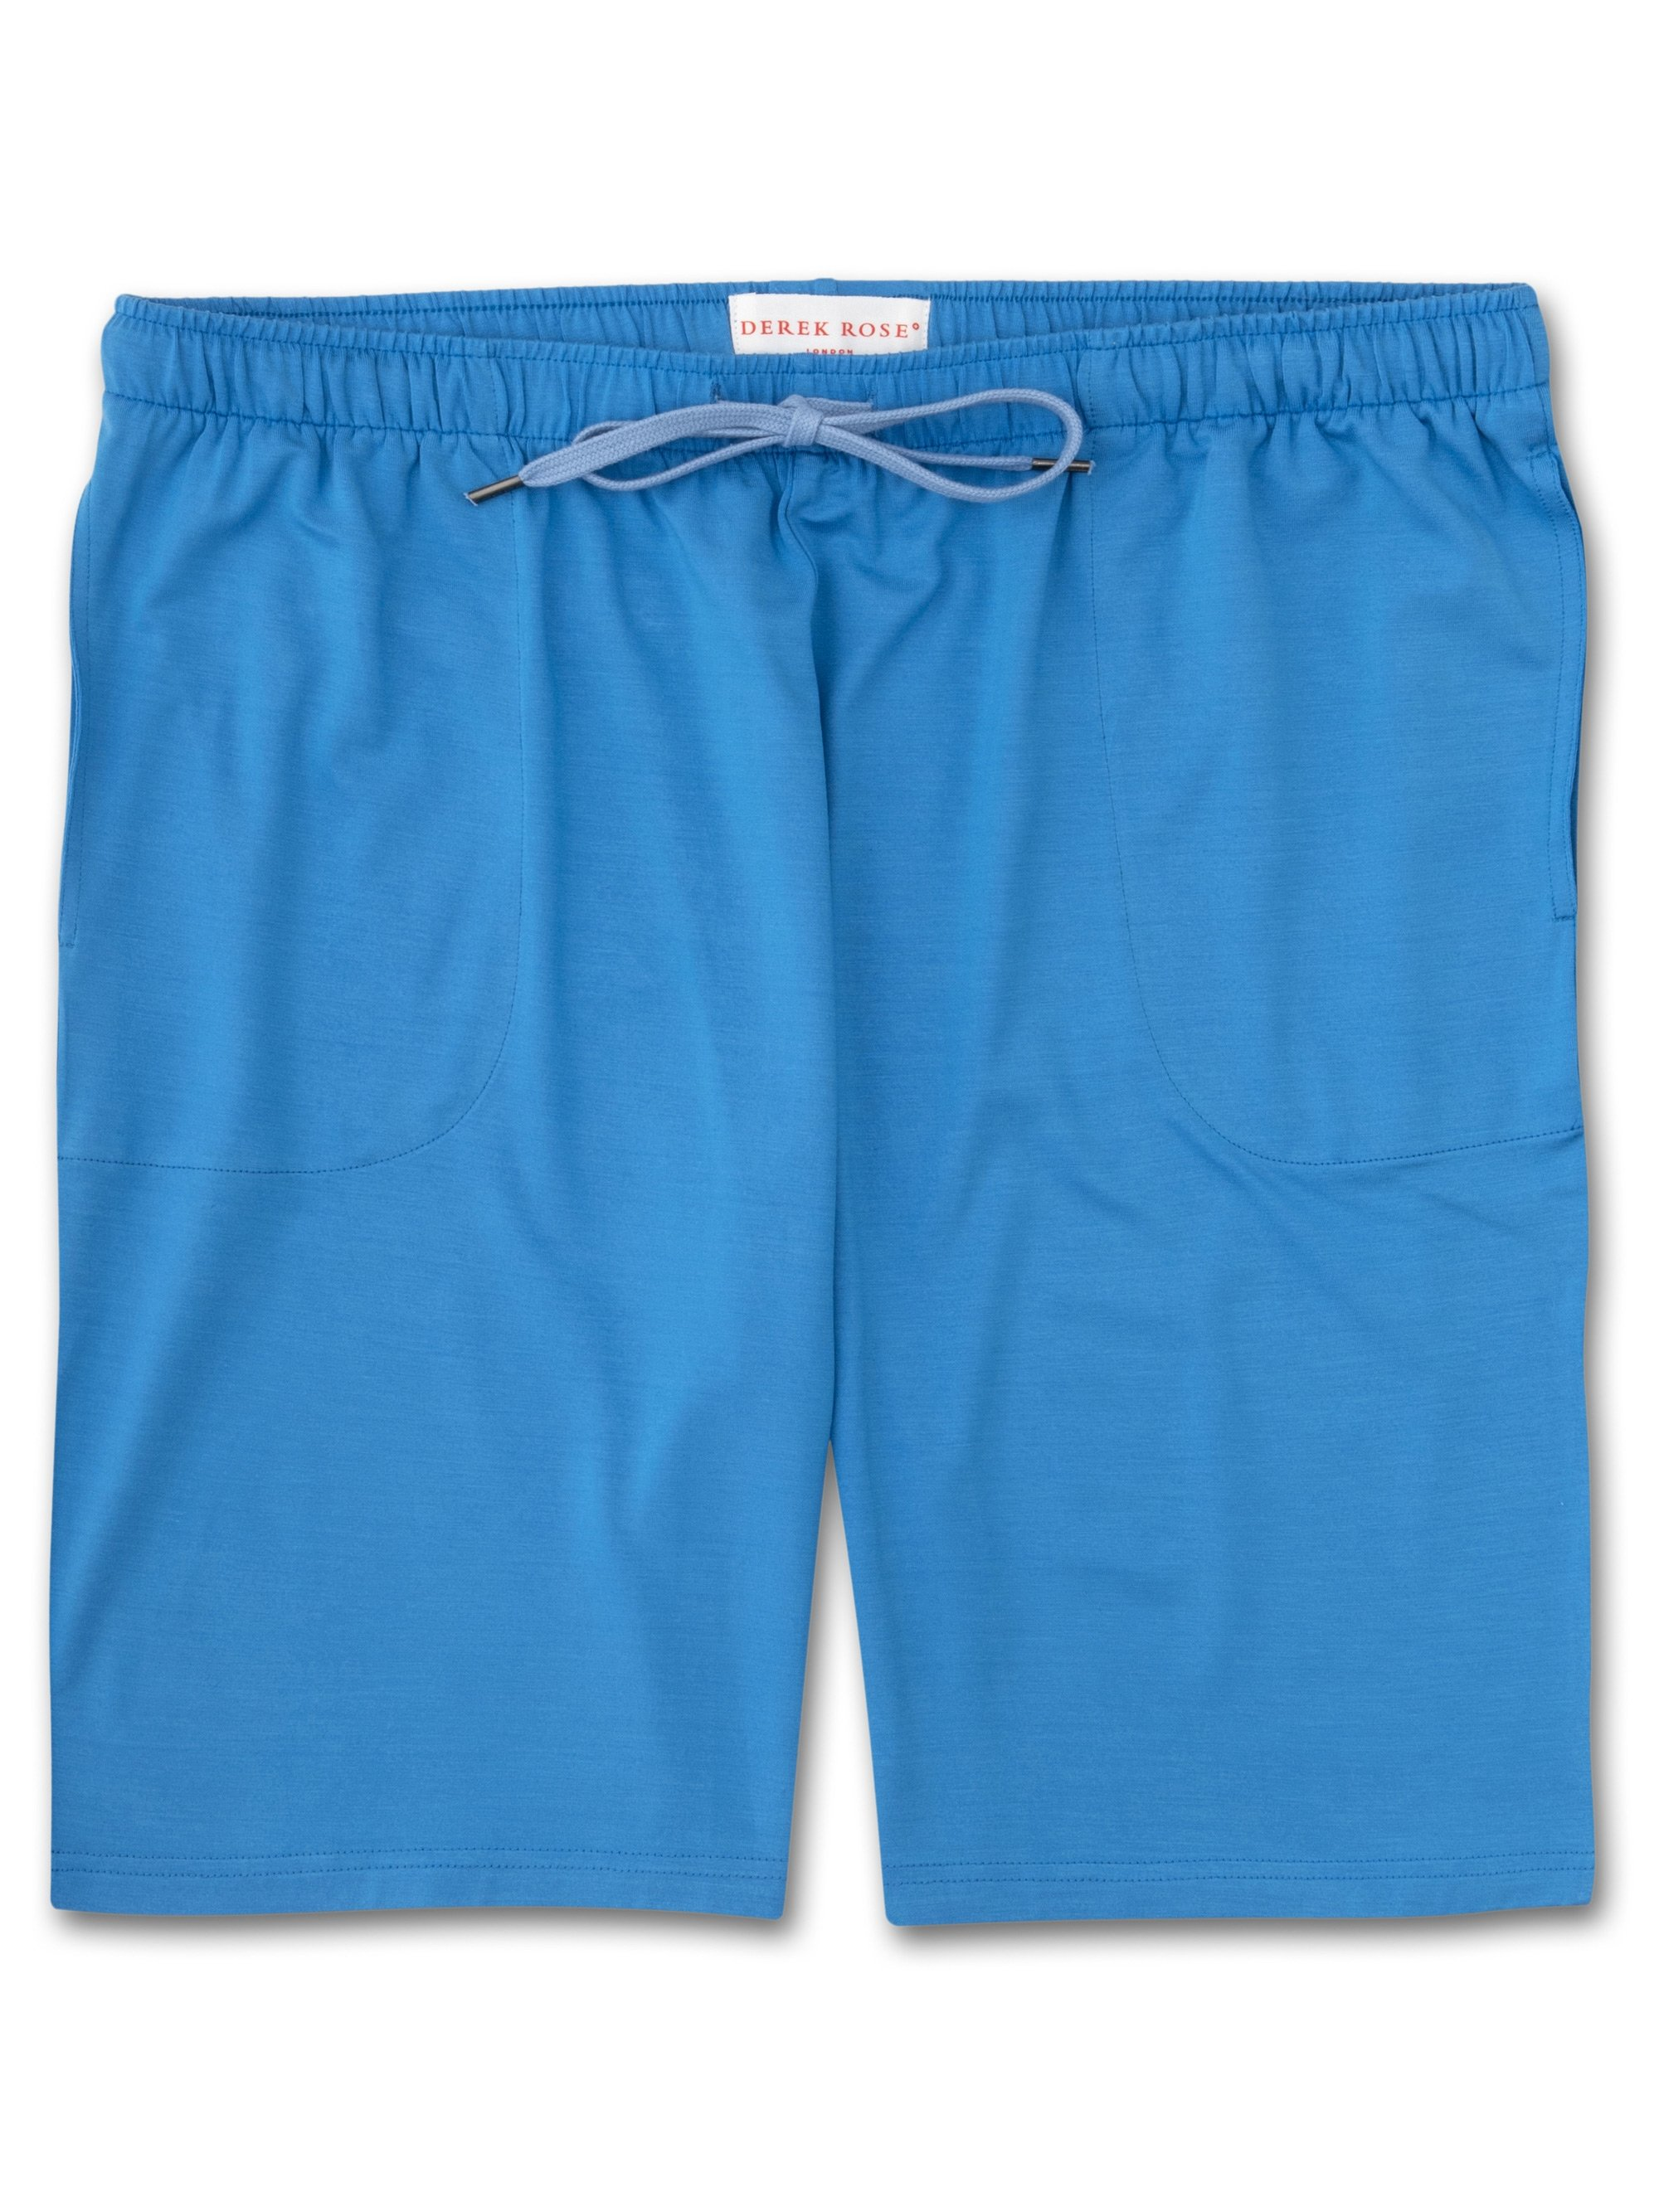 Men's Jersey Shorts Basel 4 Micro Modal Stretch Blue